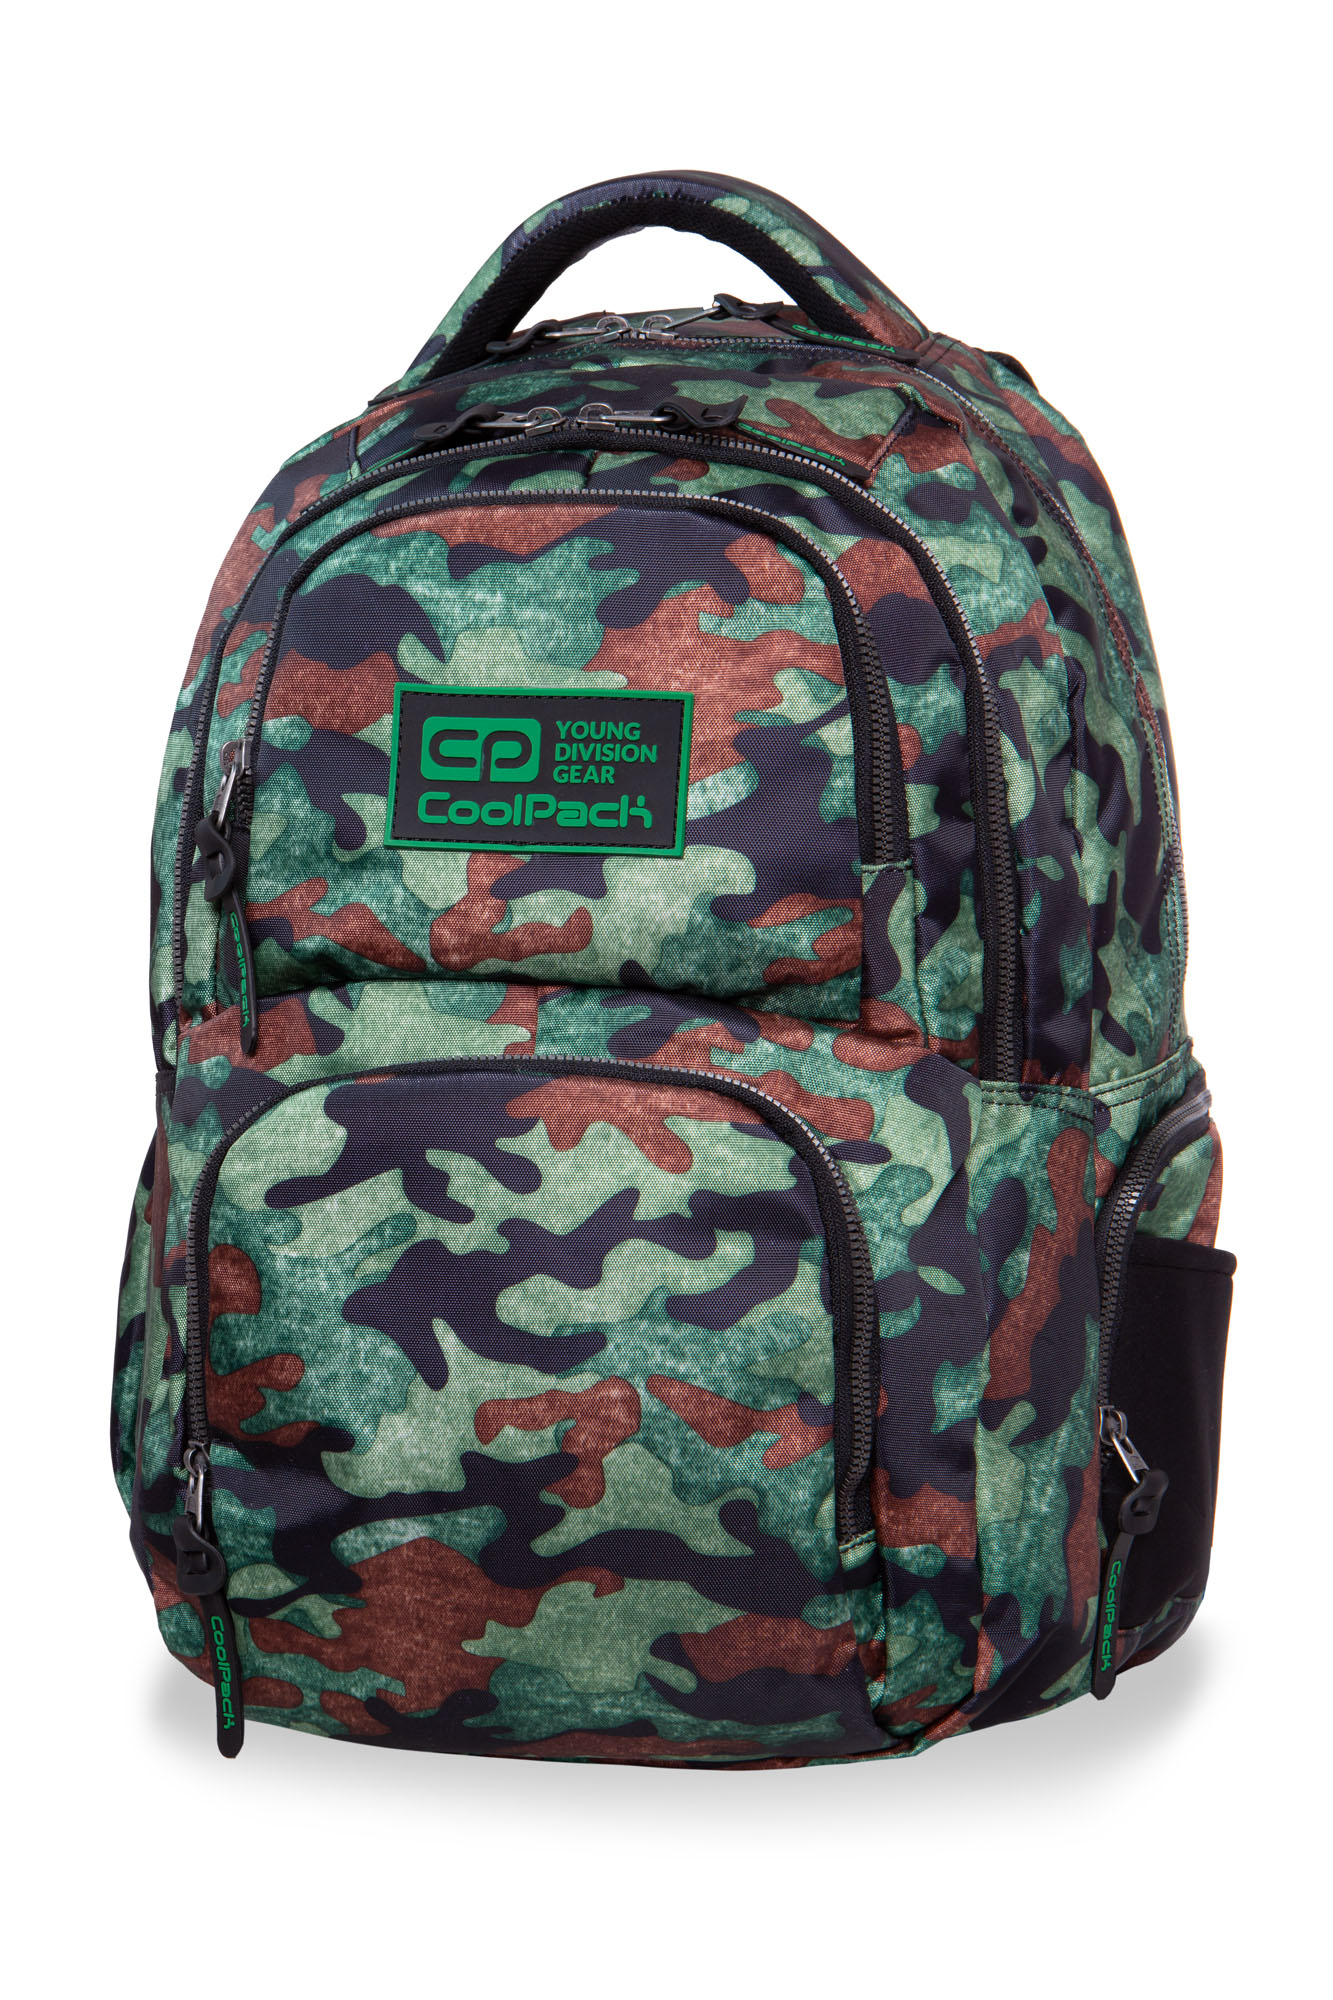 Coolpack - aero - youth backpack - camo fusion green